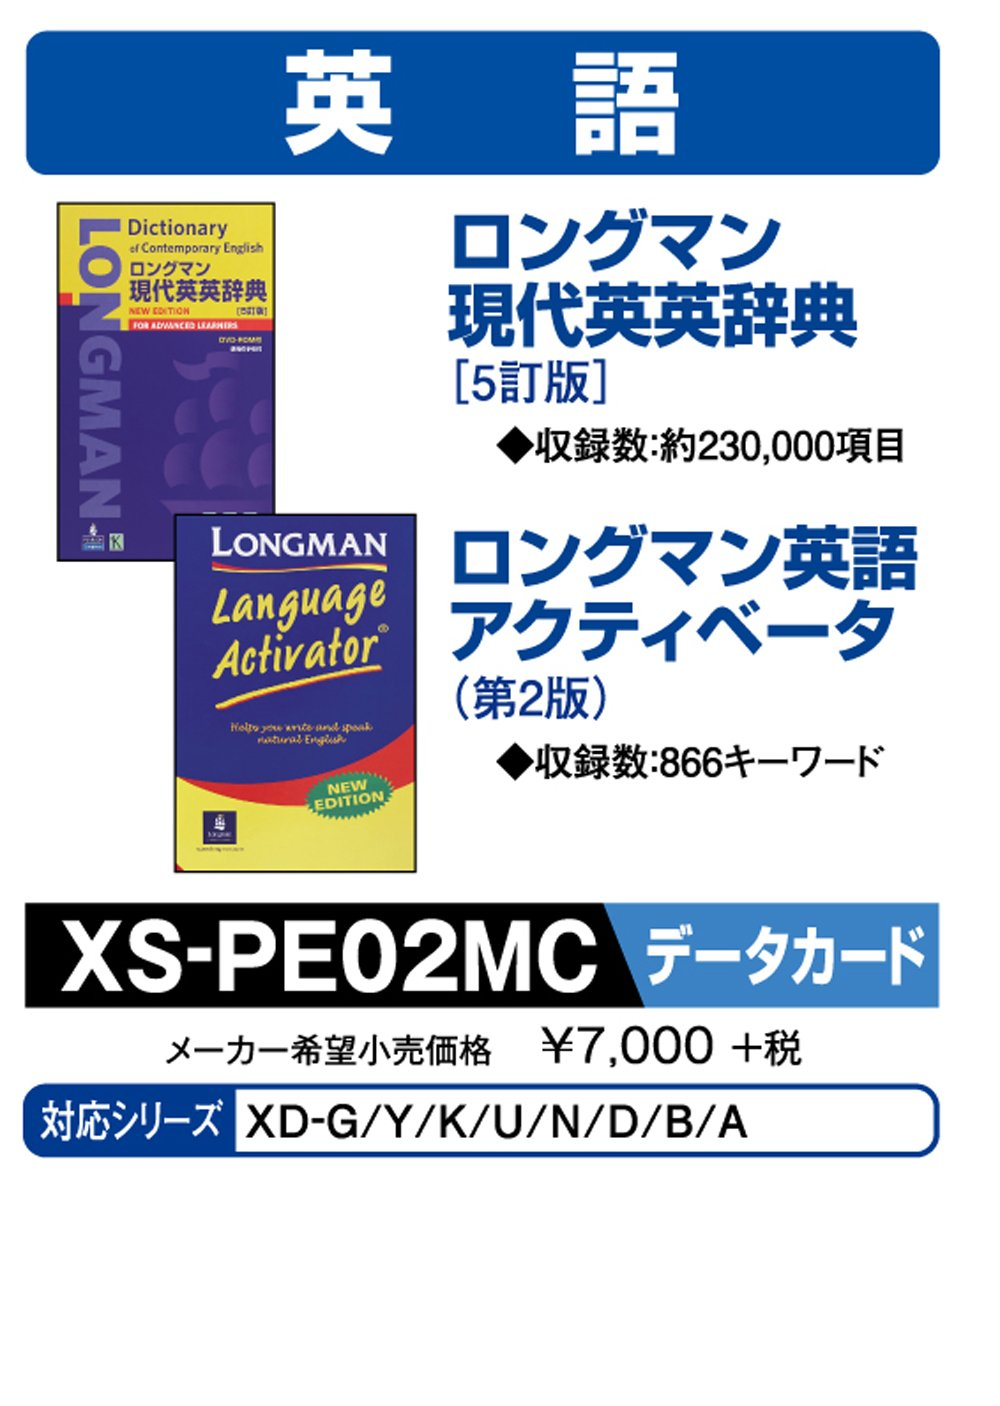 Casio electronic dictionary add content microSD card version of Longman Dictionary of Contemporary English English activator XS-PE02MC